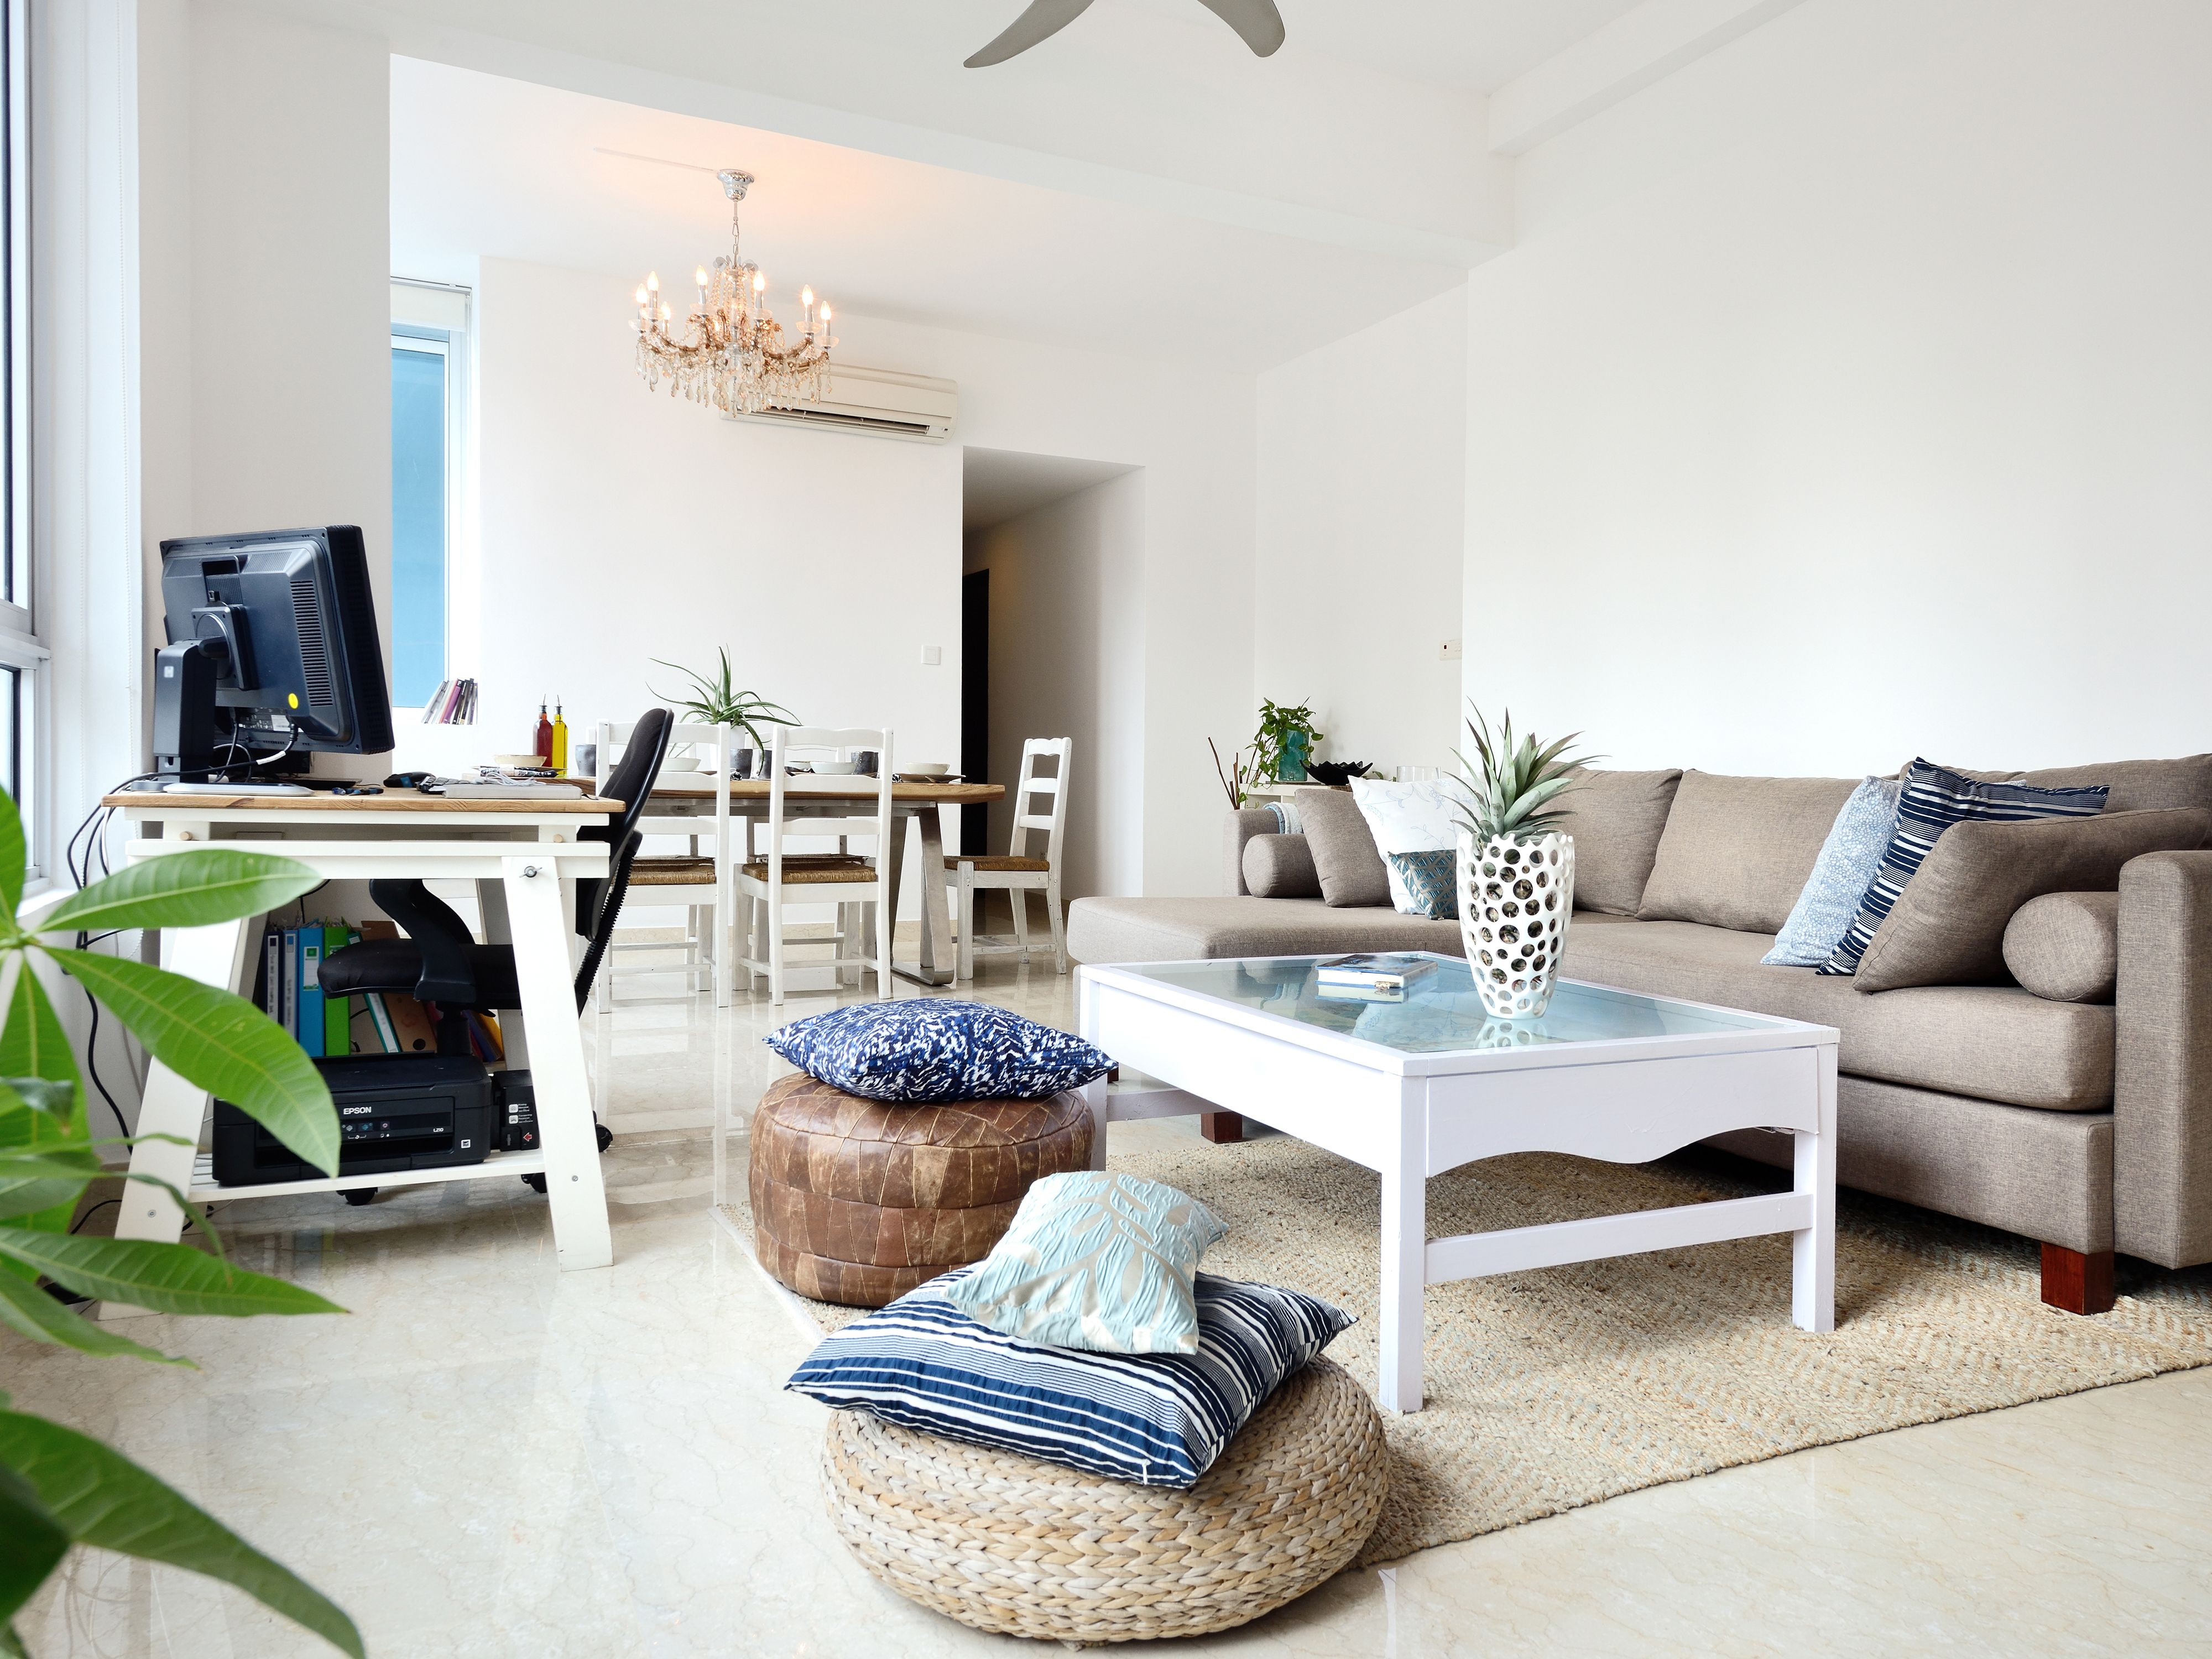 7 Fast Ways To Make Your Home Look Fabulous After Moving In